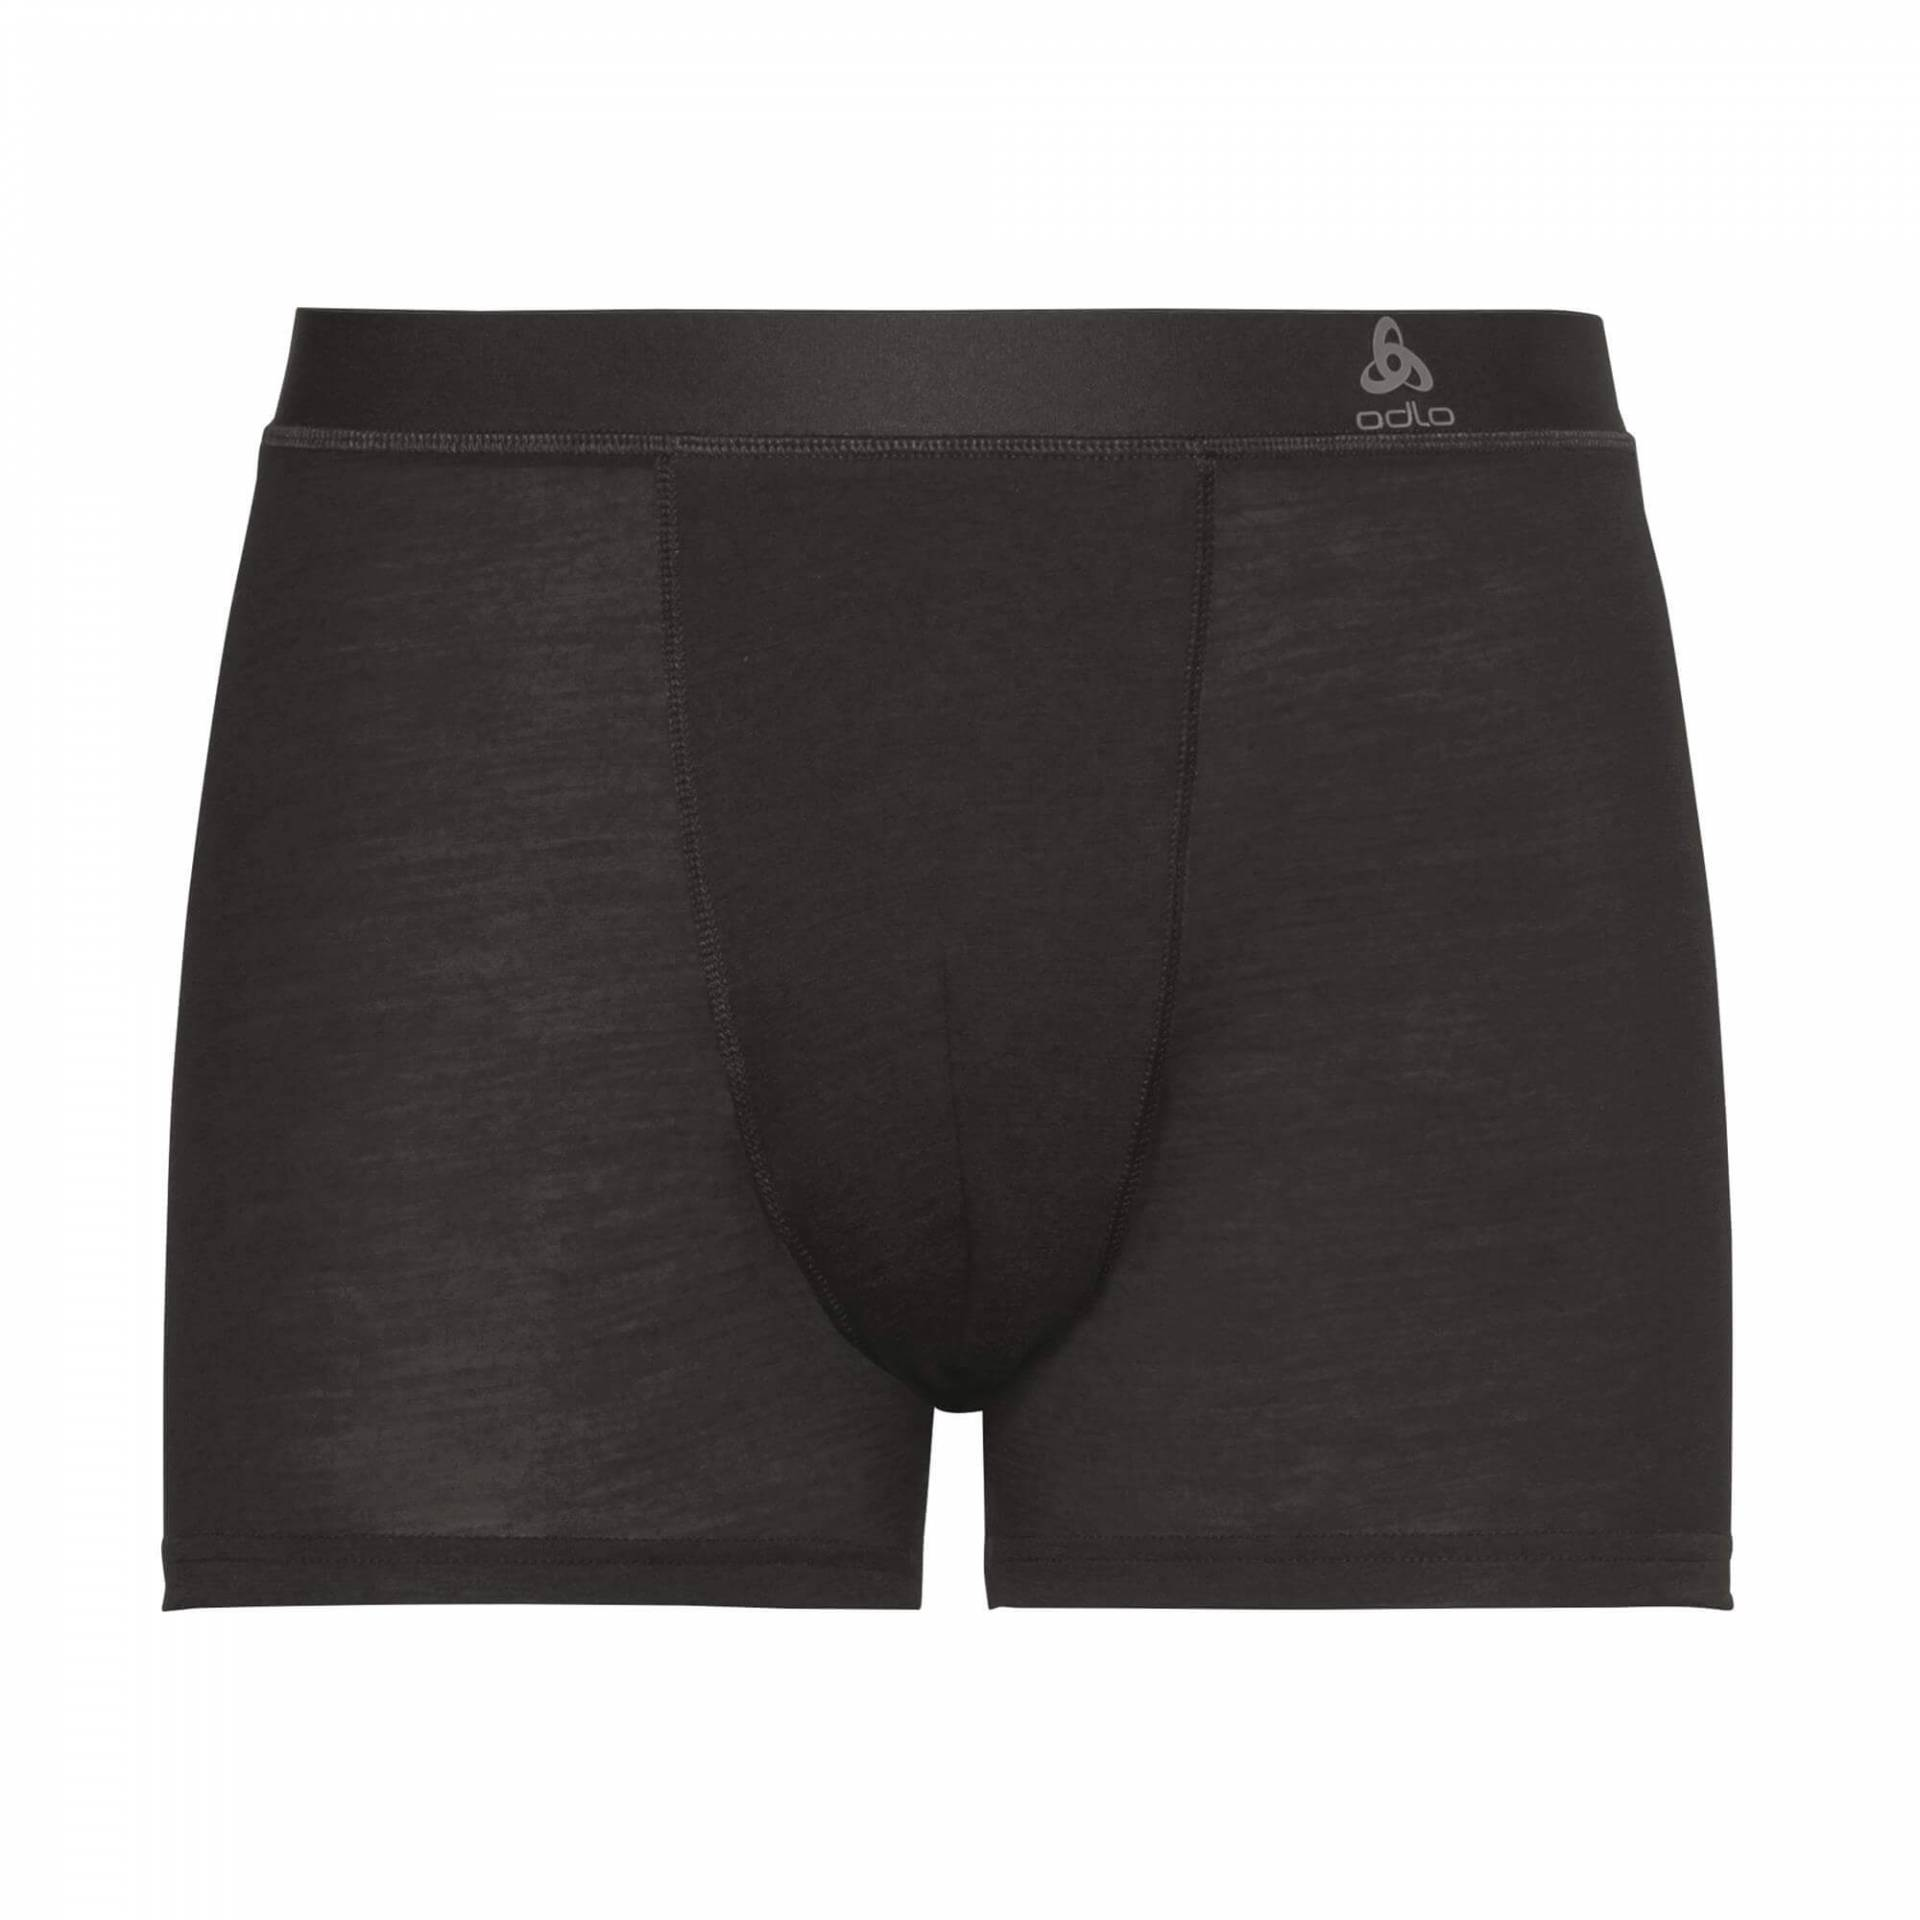 Odlo Natural + Light SUW Bottom Herren Boxershort schwarz Gr. XXL von Odlo